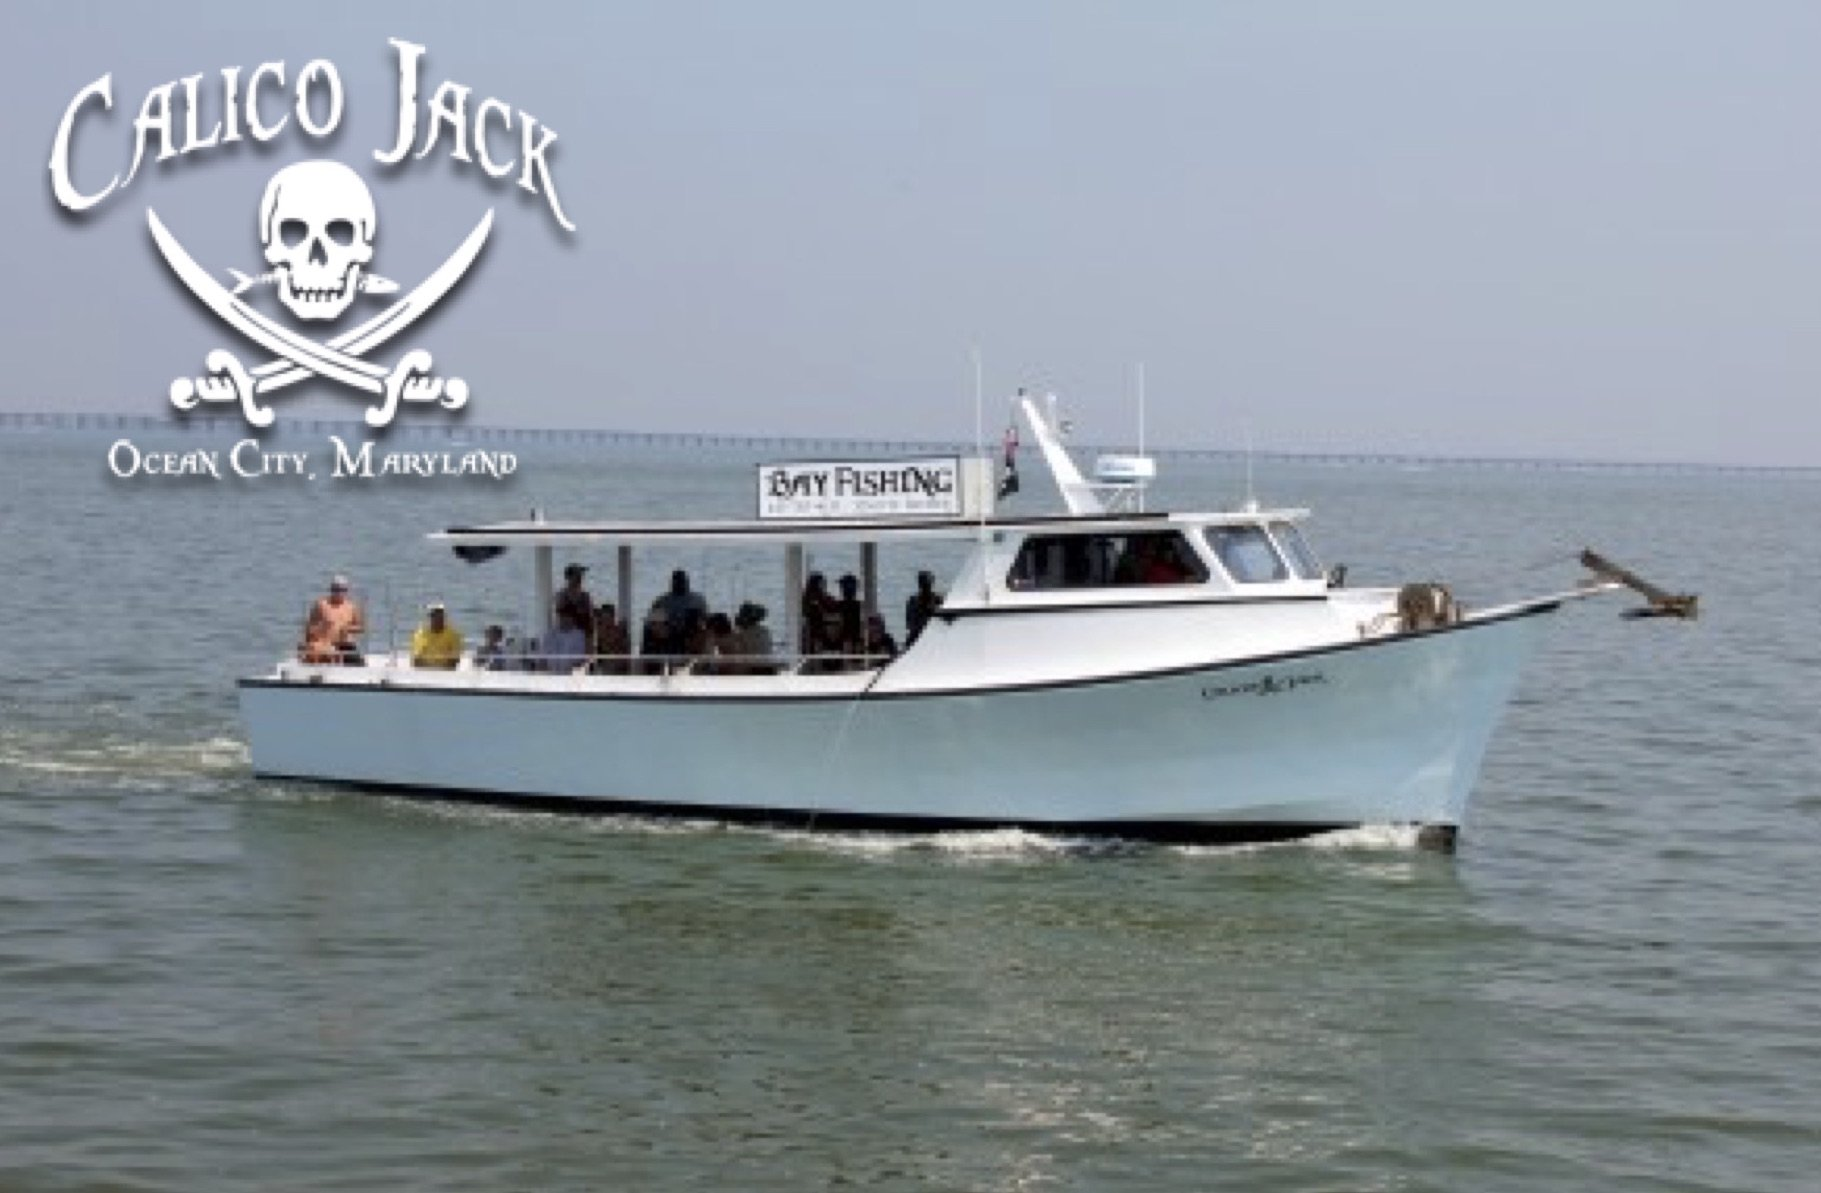 Calico jack fishing reports news ocean city md tournaments for Ocean city fishing charters